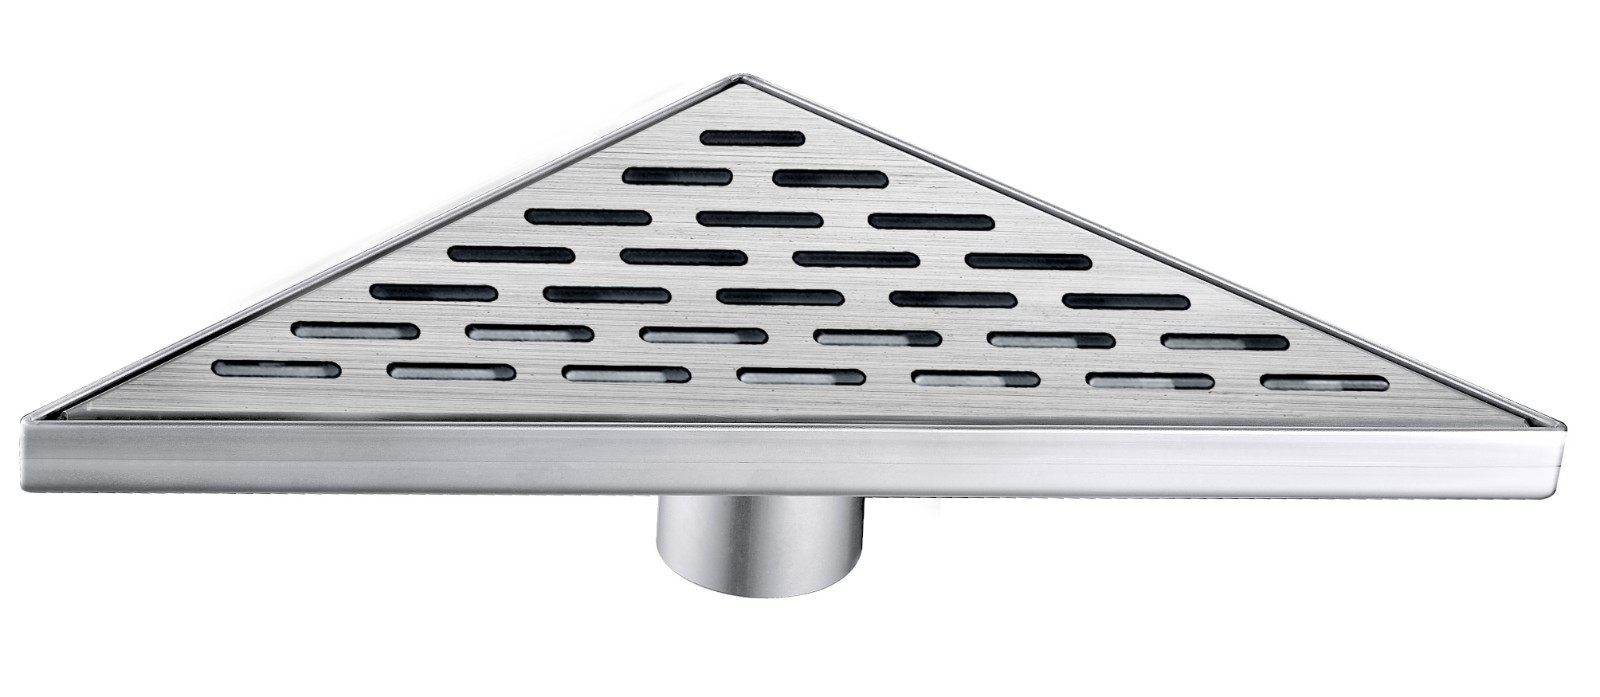 Norye bathroom trench drain supply for residential